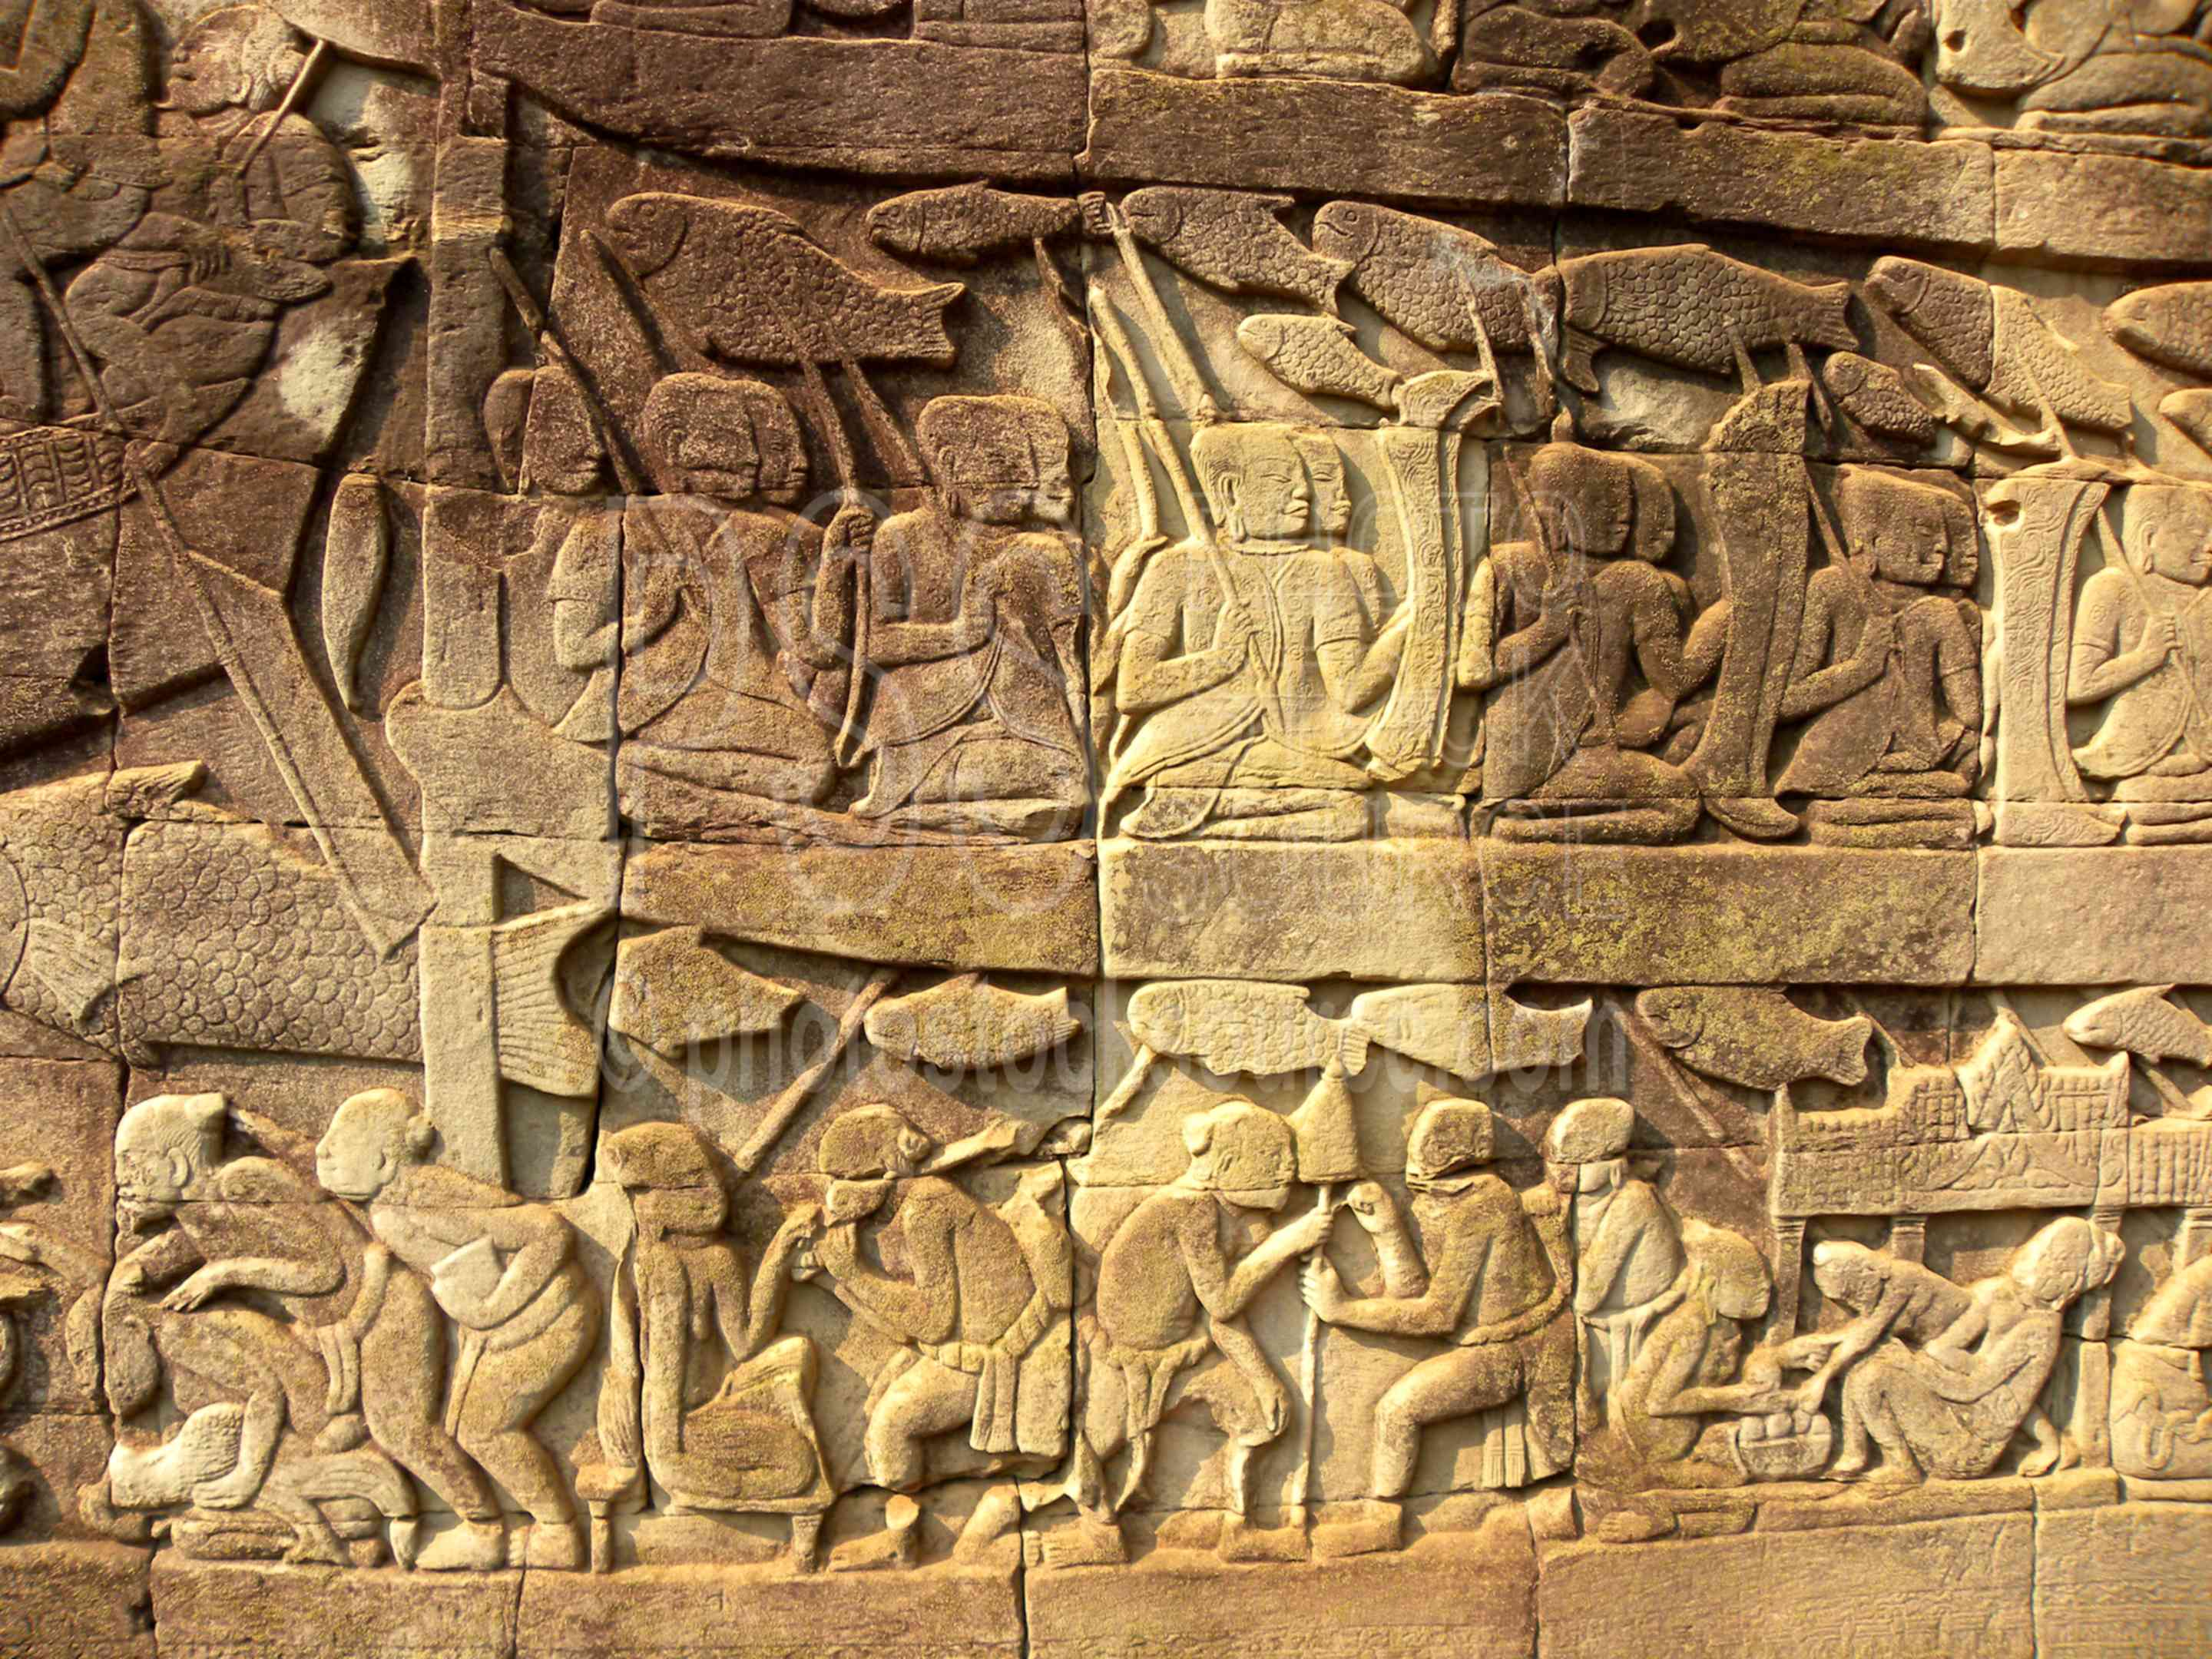 Photo of bayon bas relief carvings by stock source